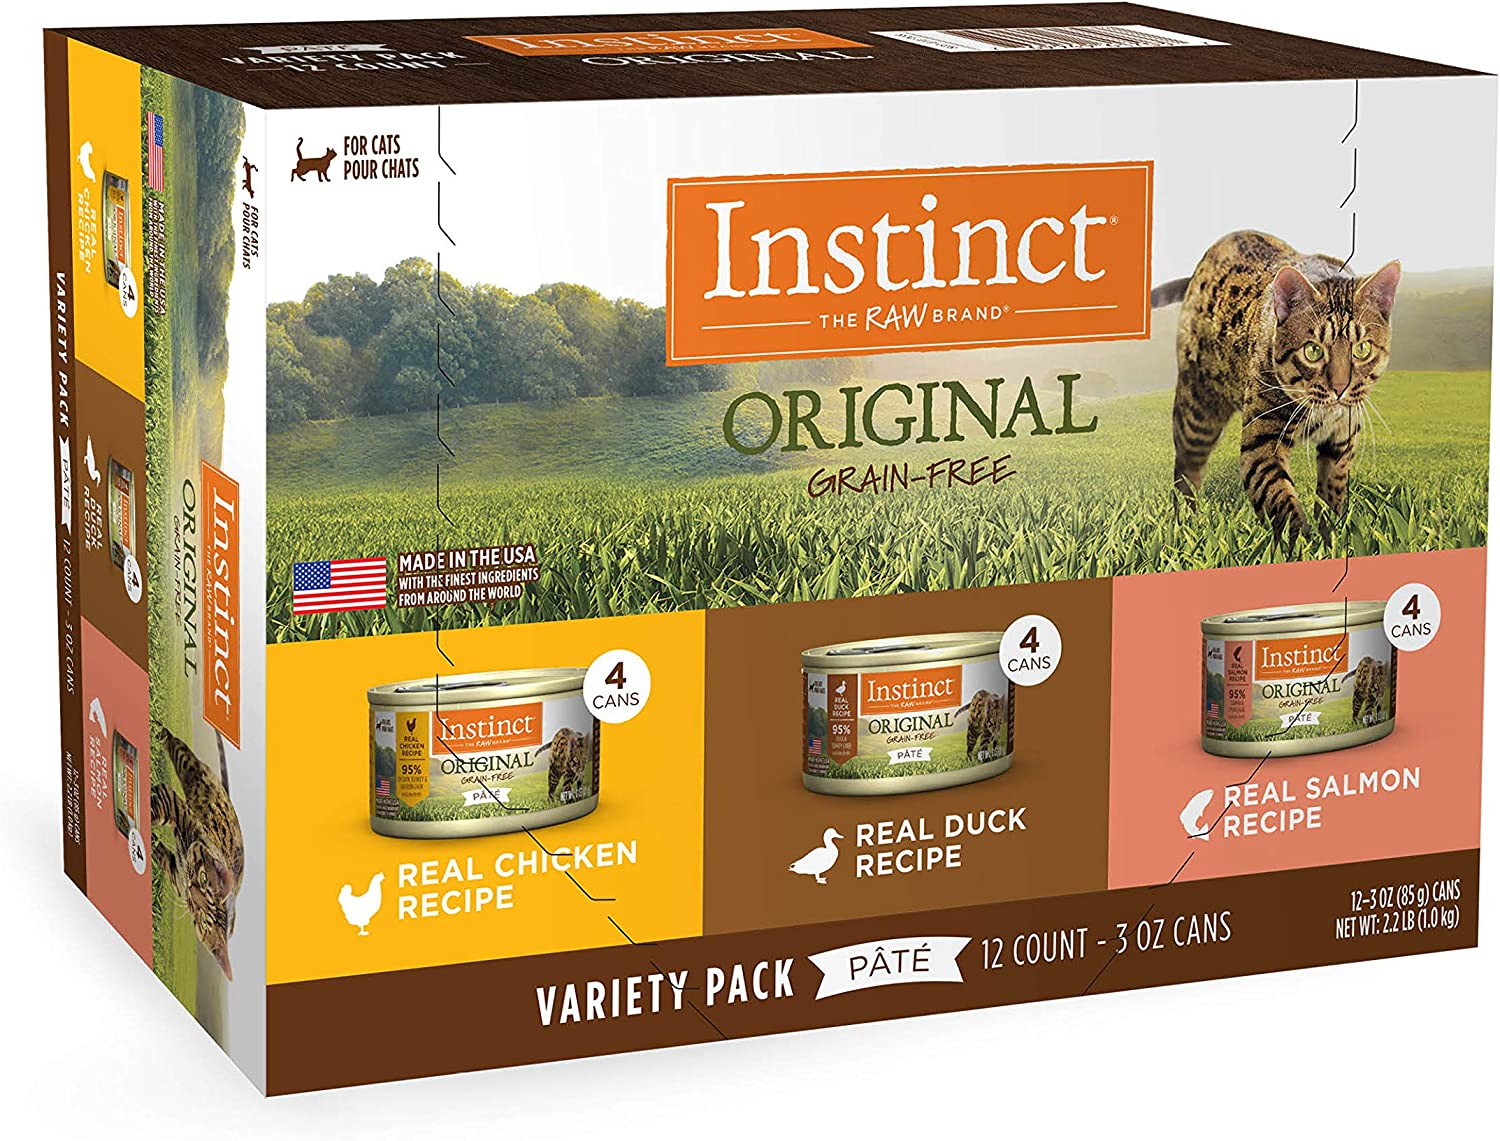 Instinct Original Grain Free Recipe Variety Pack Natural Wet Canned Cat Food by Nature's Variety, 3 oz. Cans (Pack of 12)